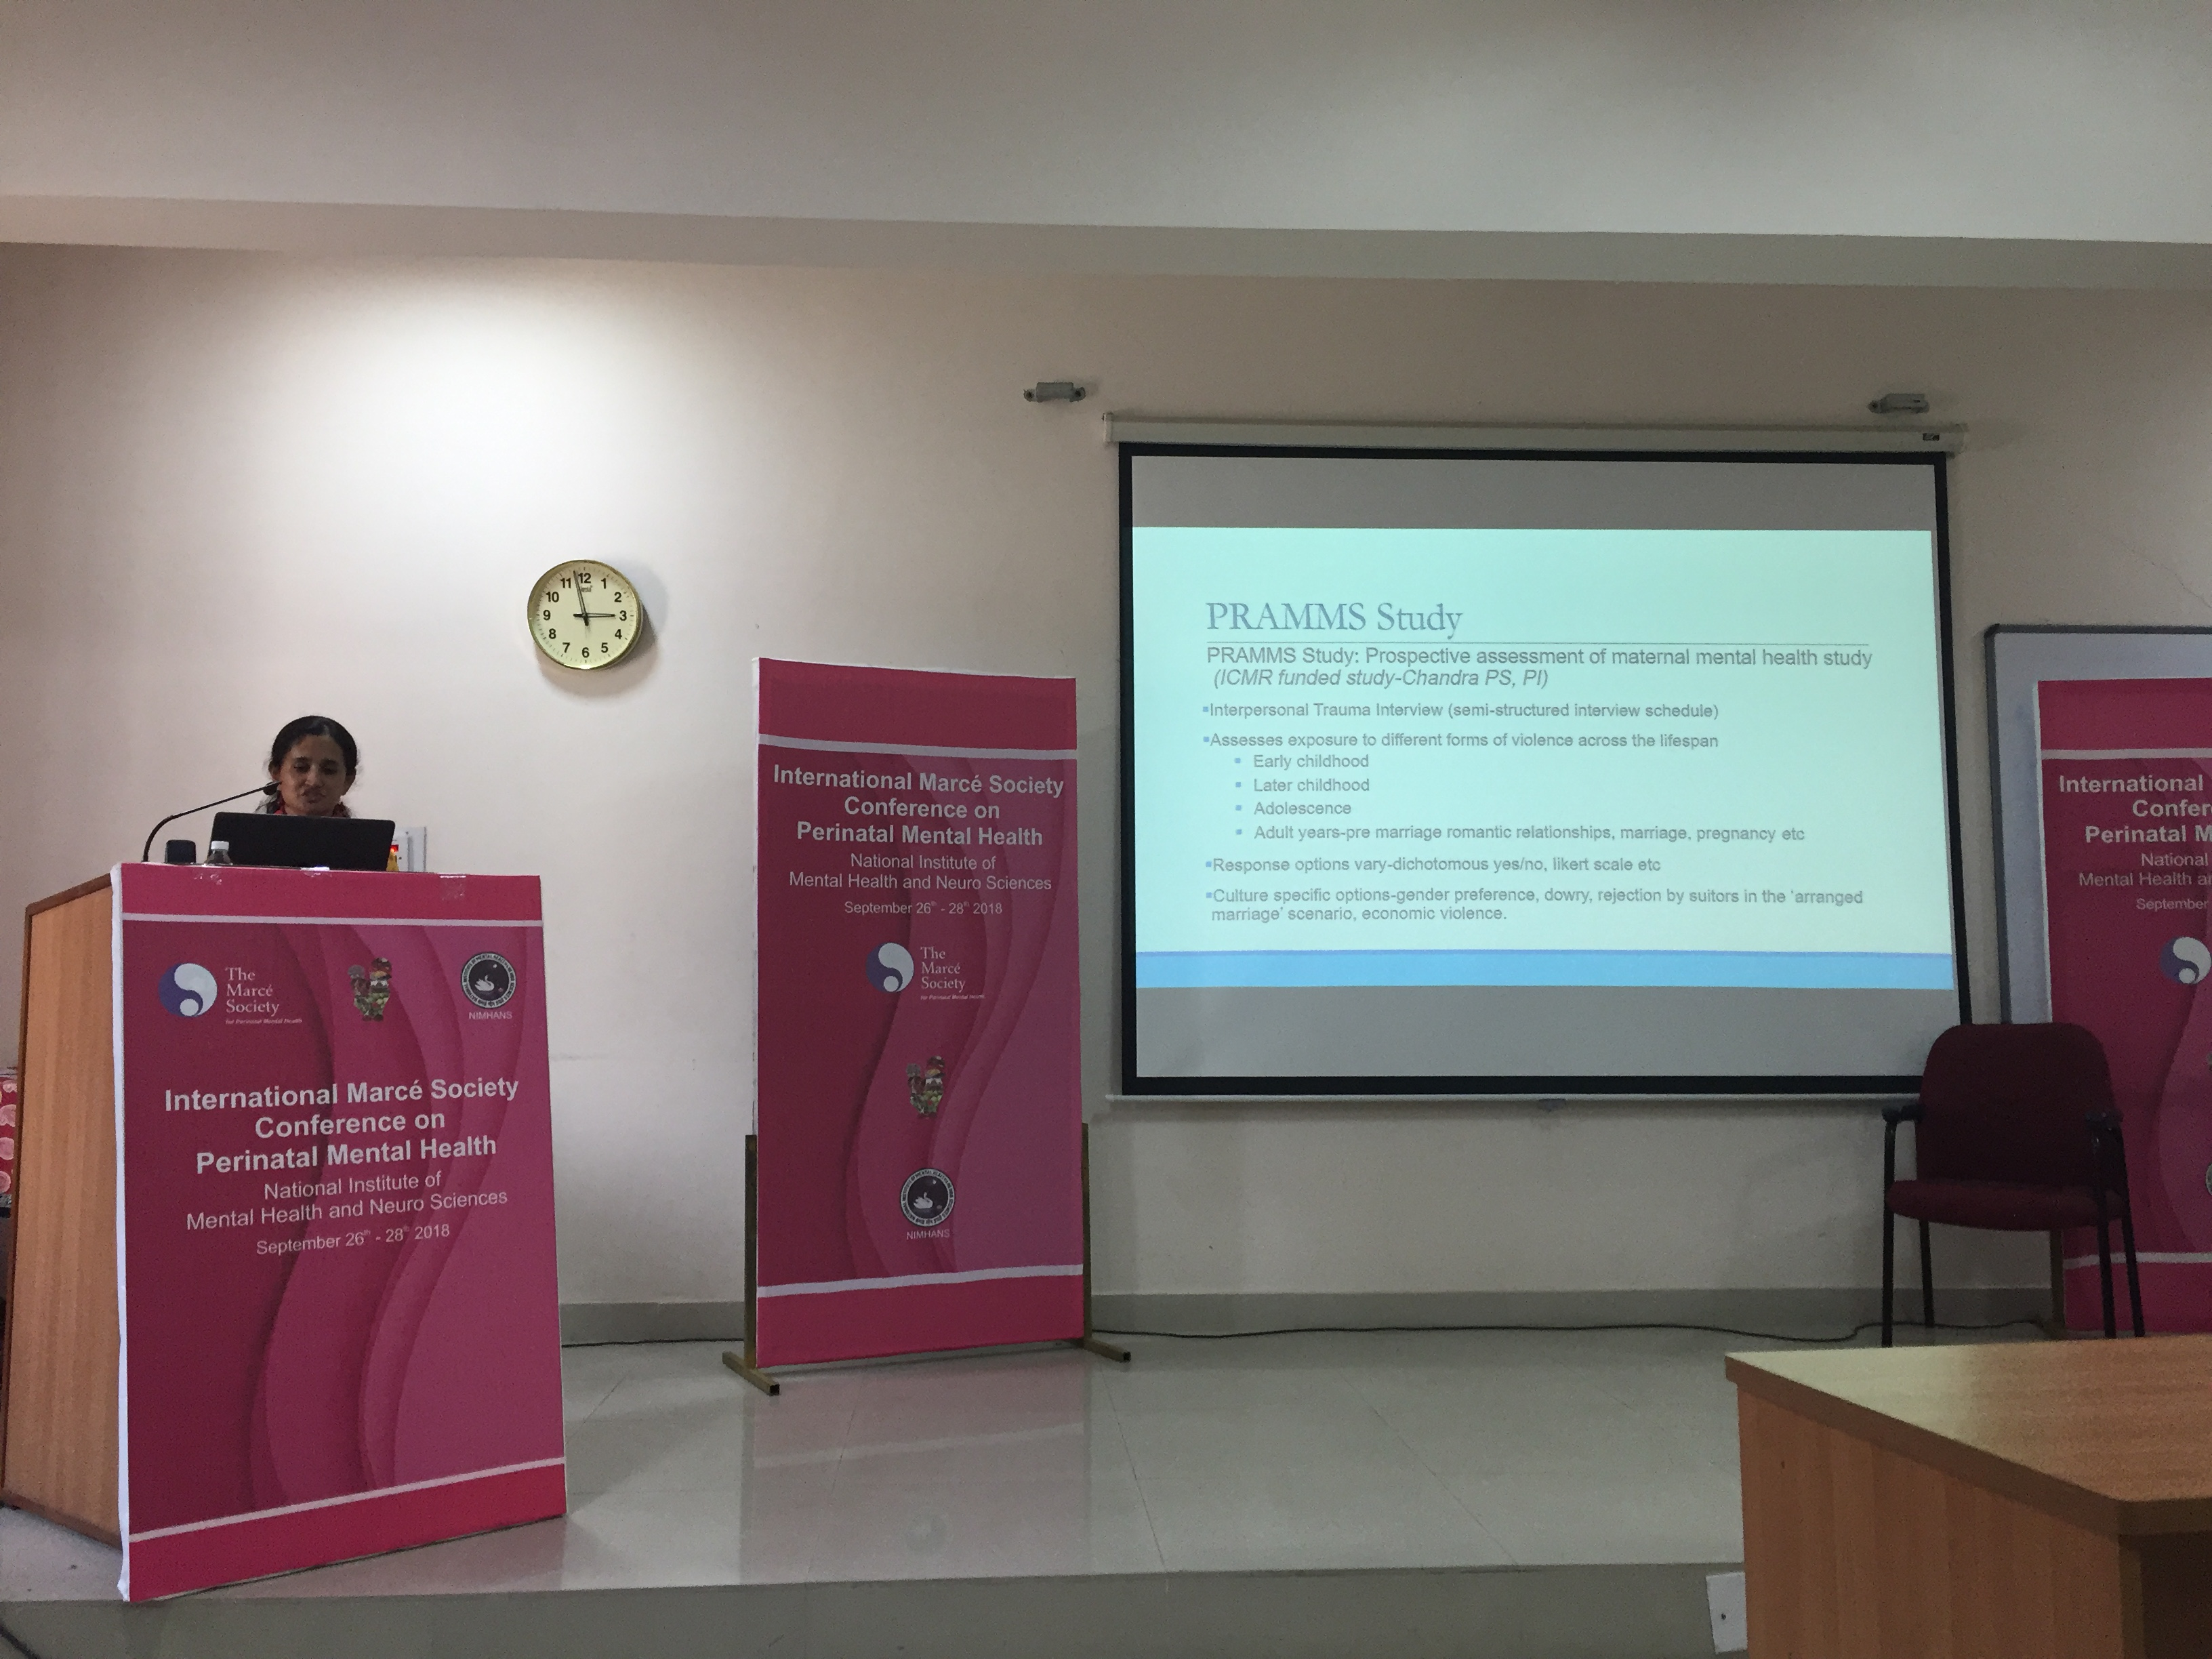 Marce2018: Perinatal Mental Health conference report from